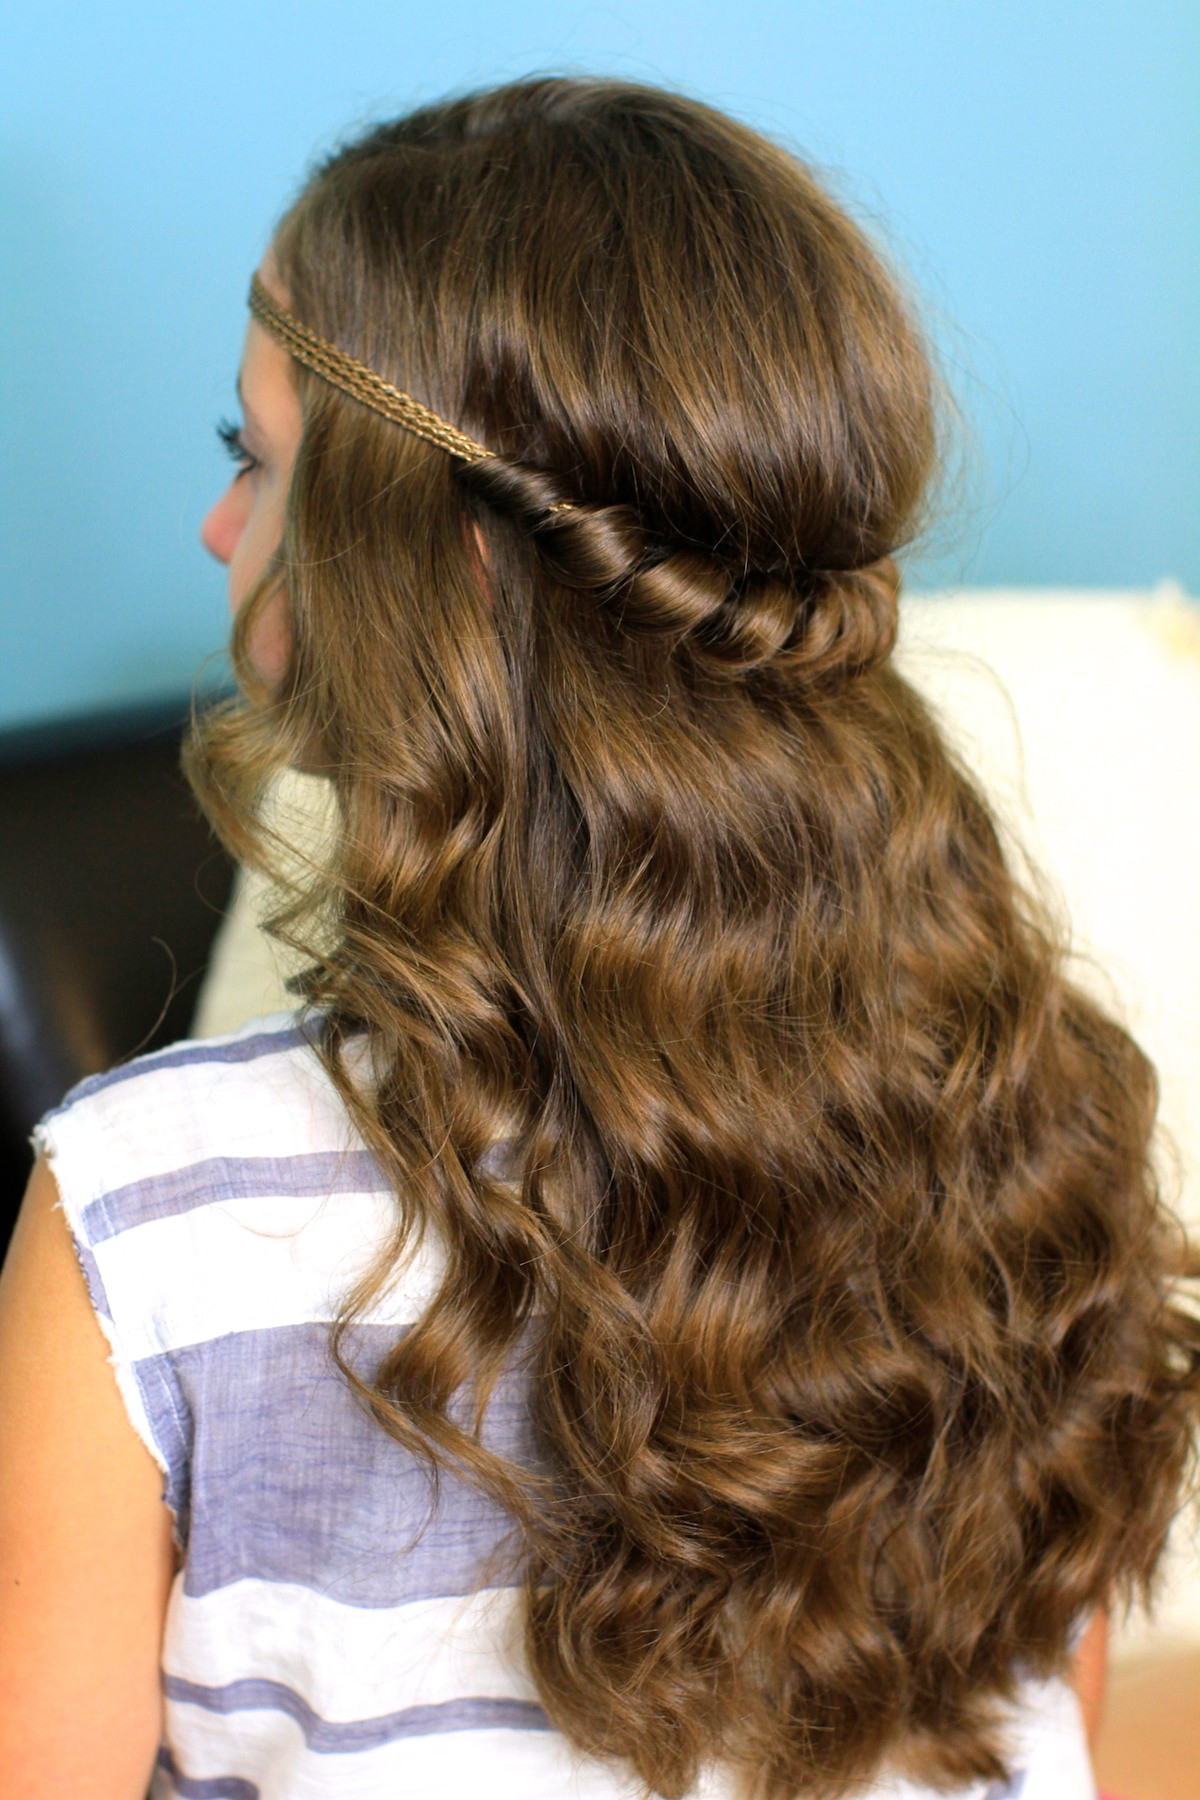 Best ideas about Girls Hair Cut Styles . Save or Pin Headband Twist Half Up Half Down Hairstyles Now.